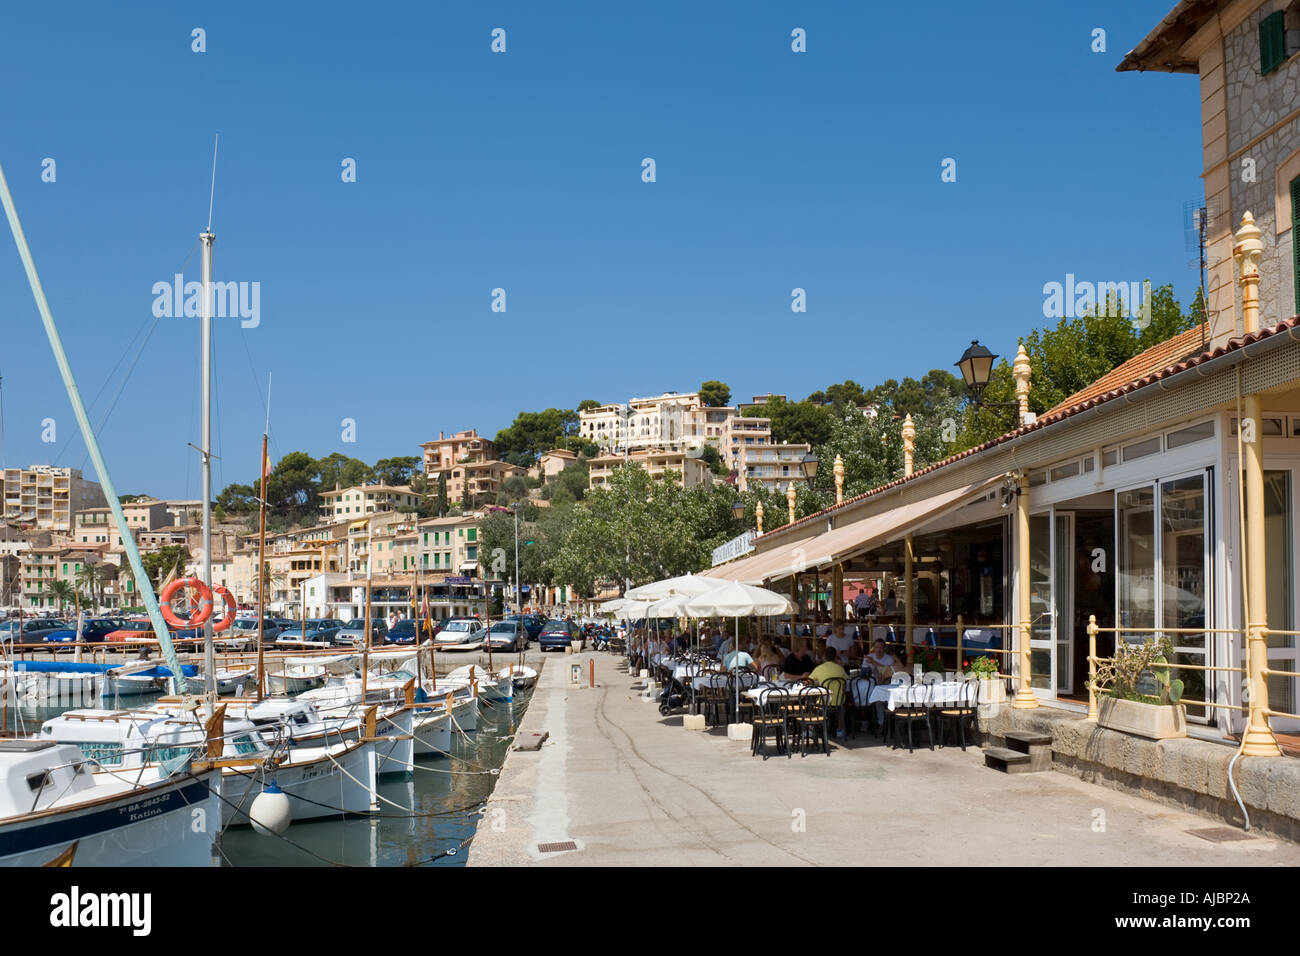 Restaurant on the harbourfront, Port de Soller (Puerto Soller), West Coast, Mallorca, Spain - Stock Image